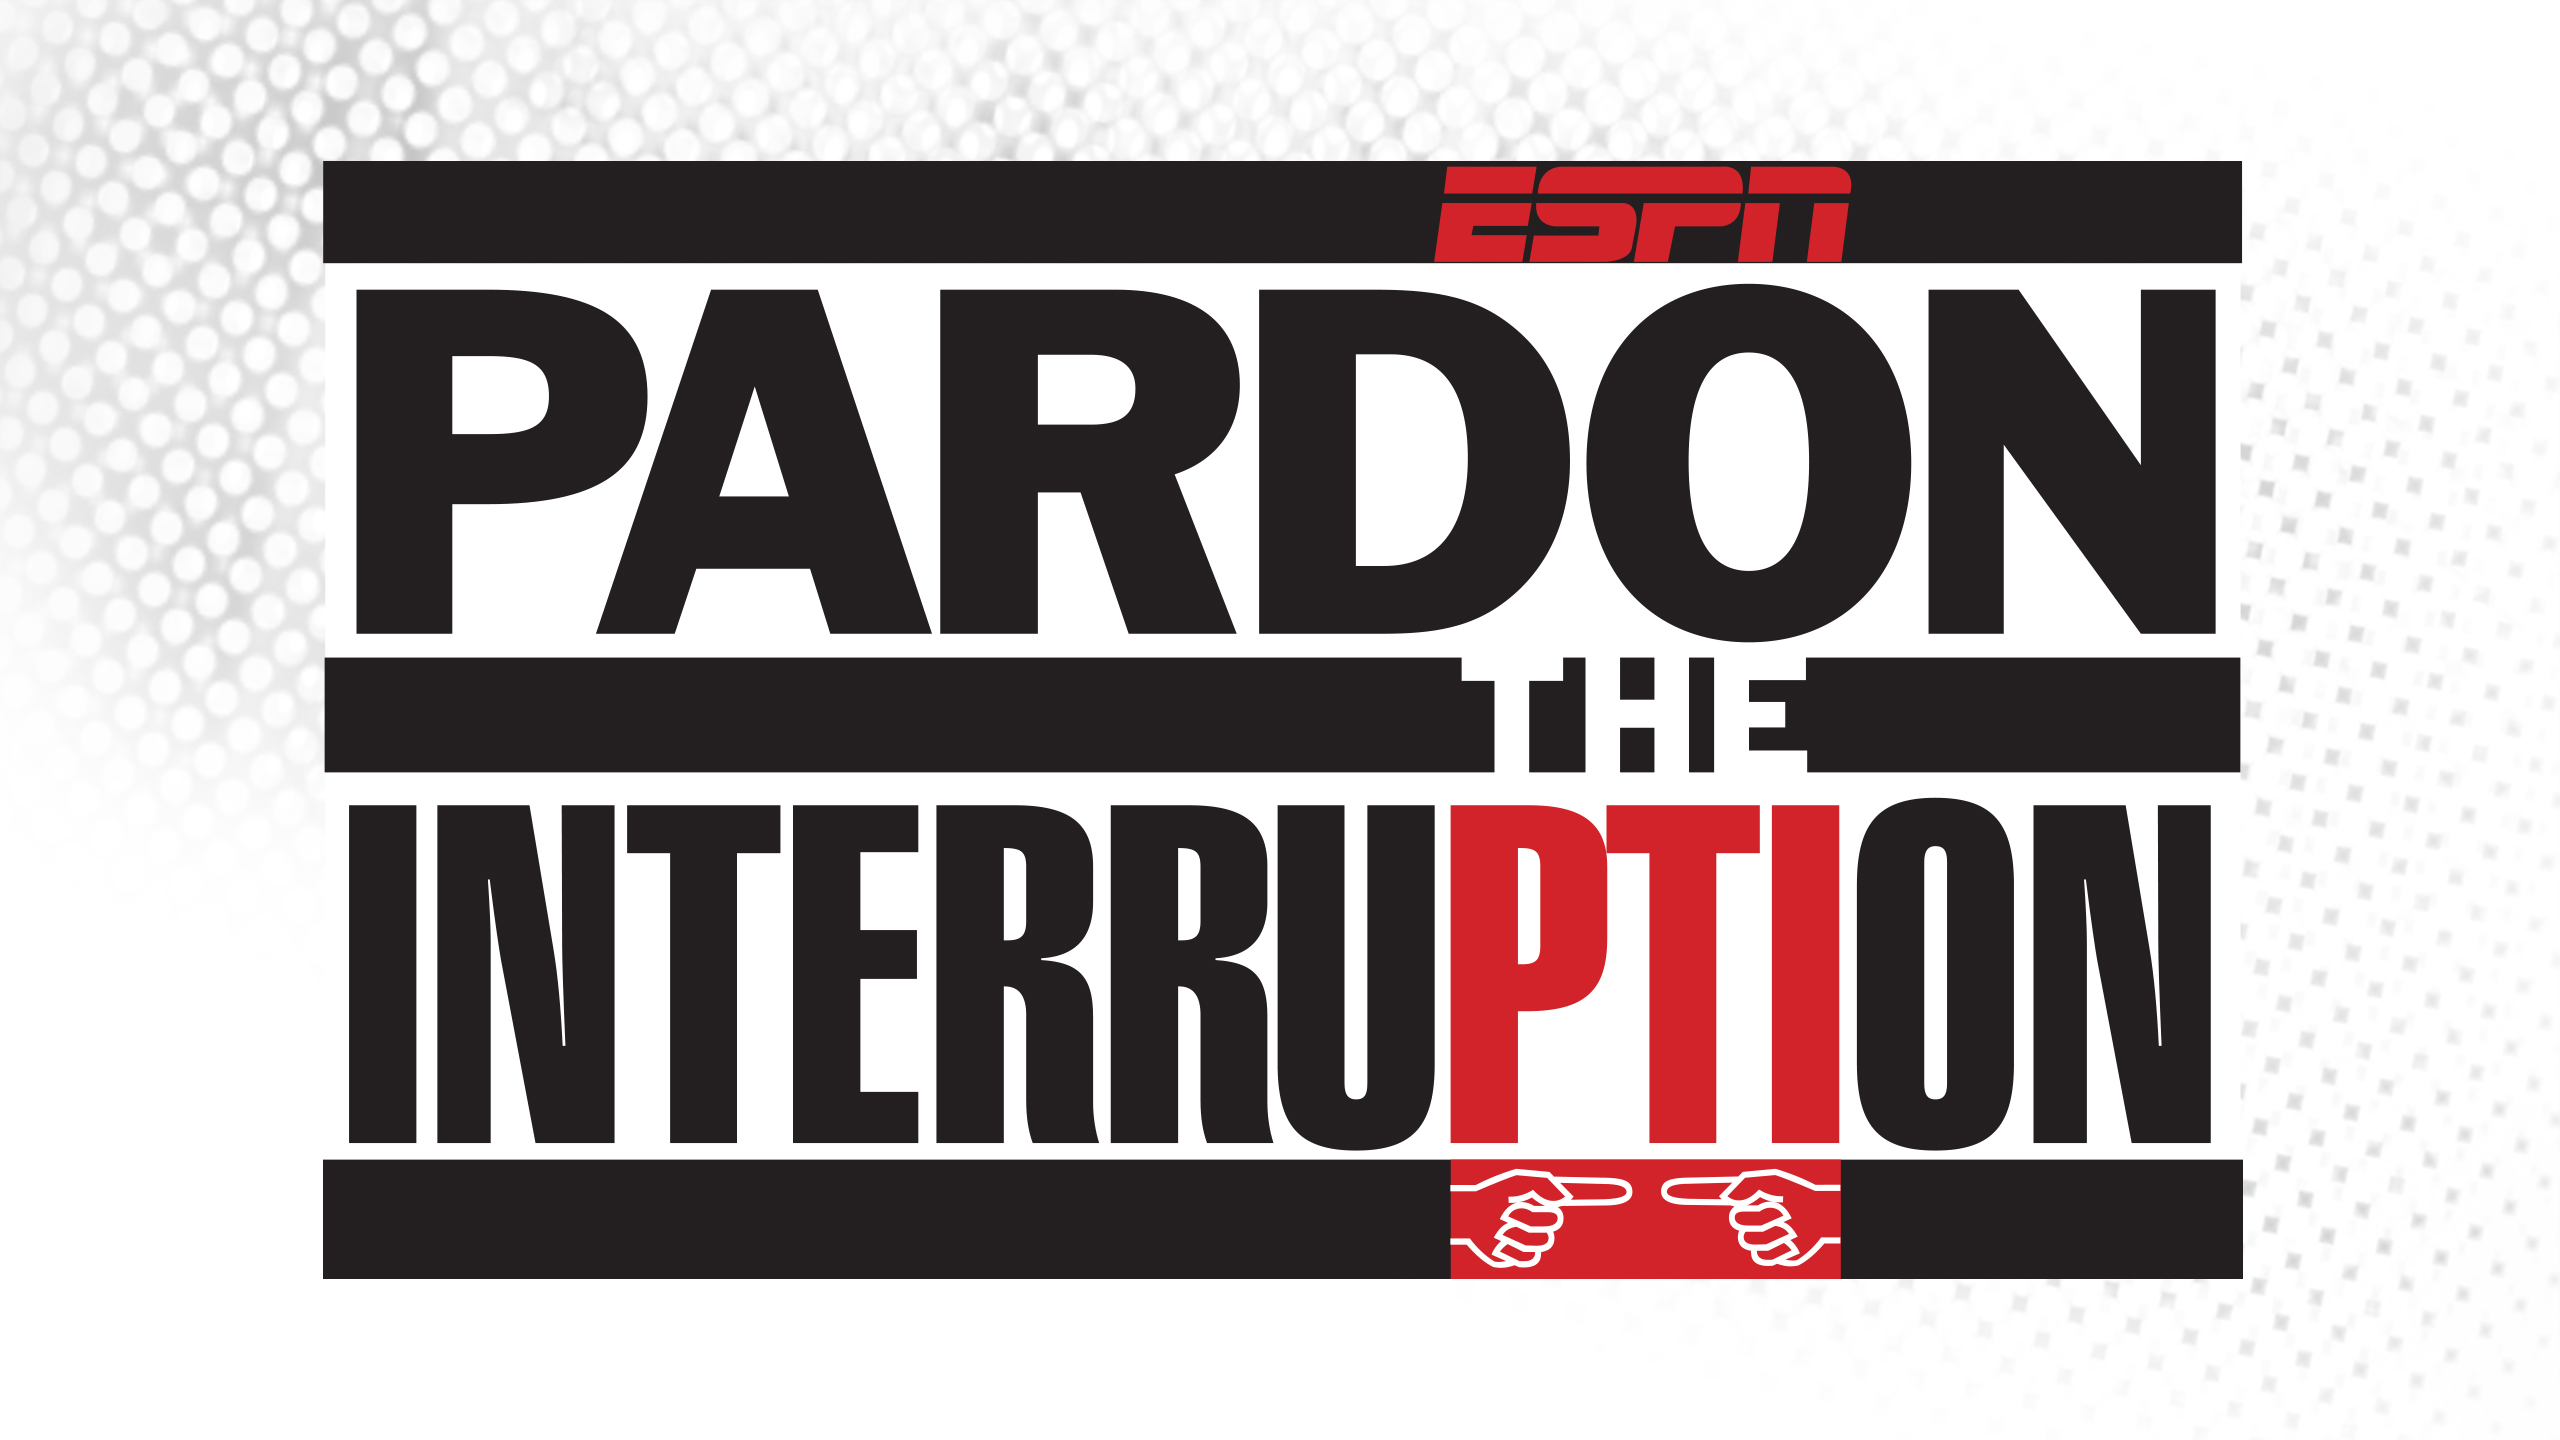 Wed, 11/14 - Pardon The Interruption